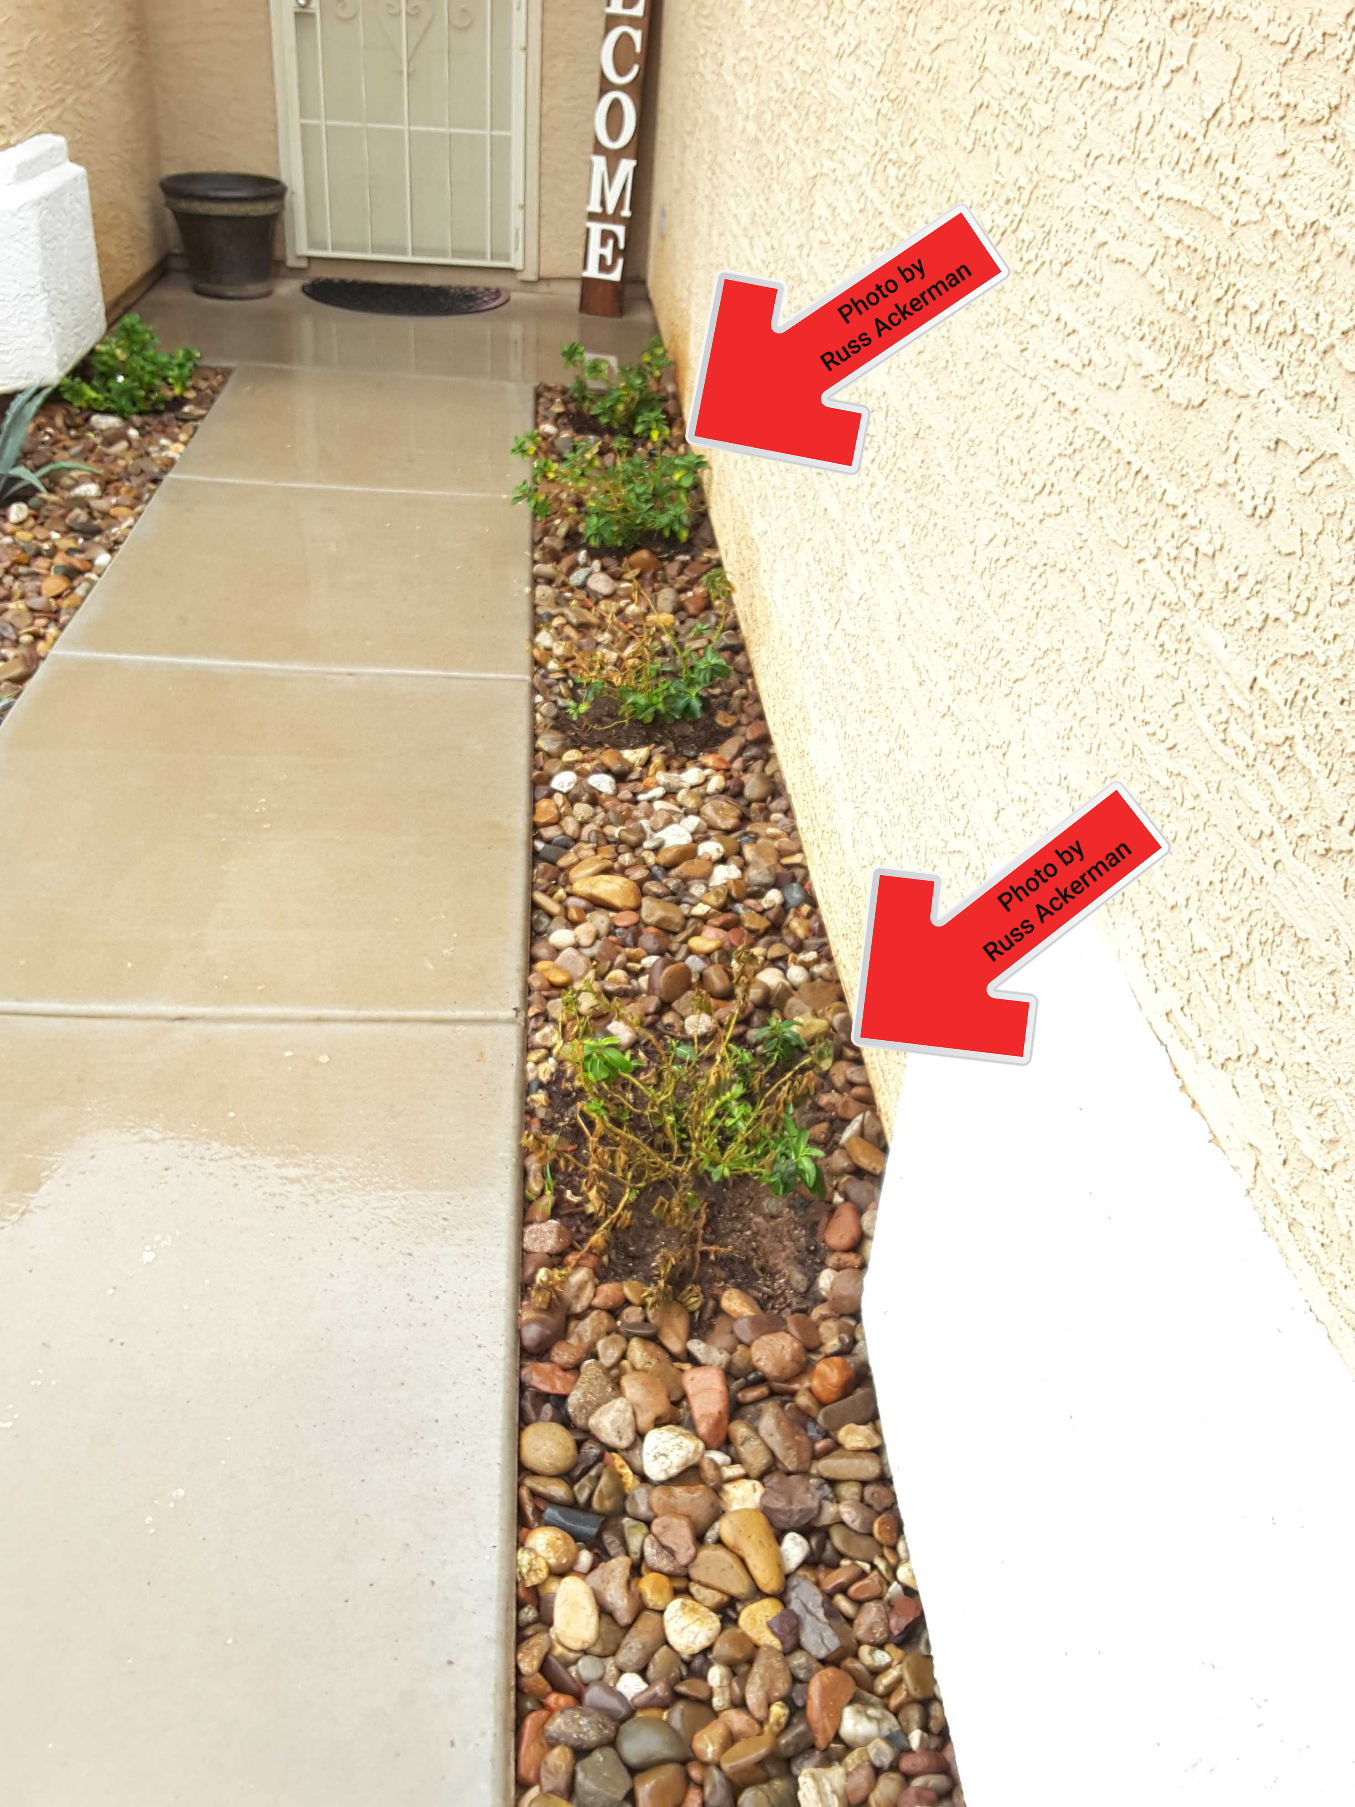 Vegetation near the home is not advised, it holds water near the foundation, could damage paint surfaces and siding and creates conditions conducive to termites and pests.